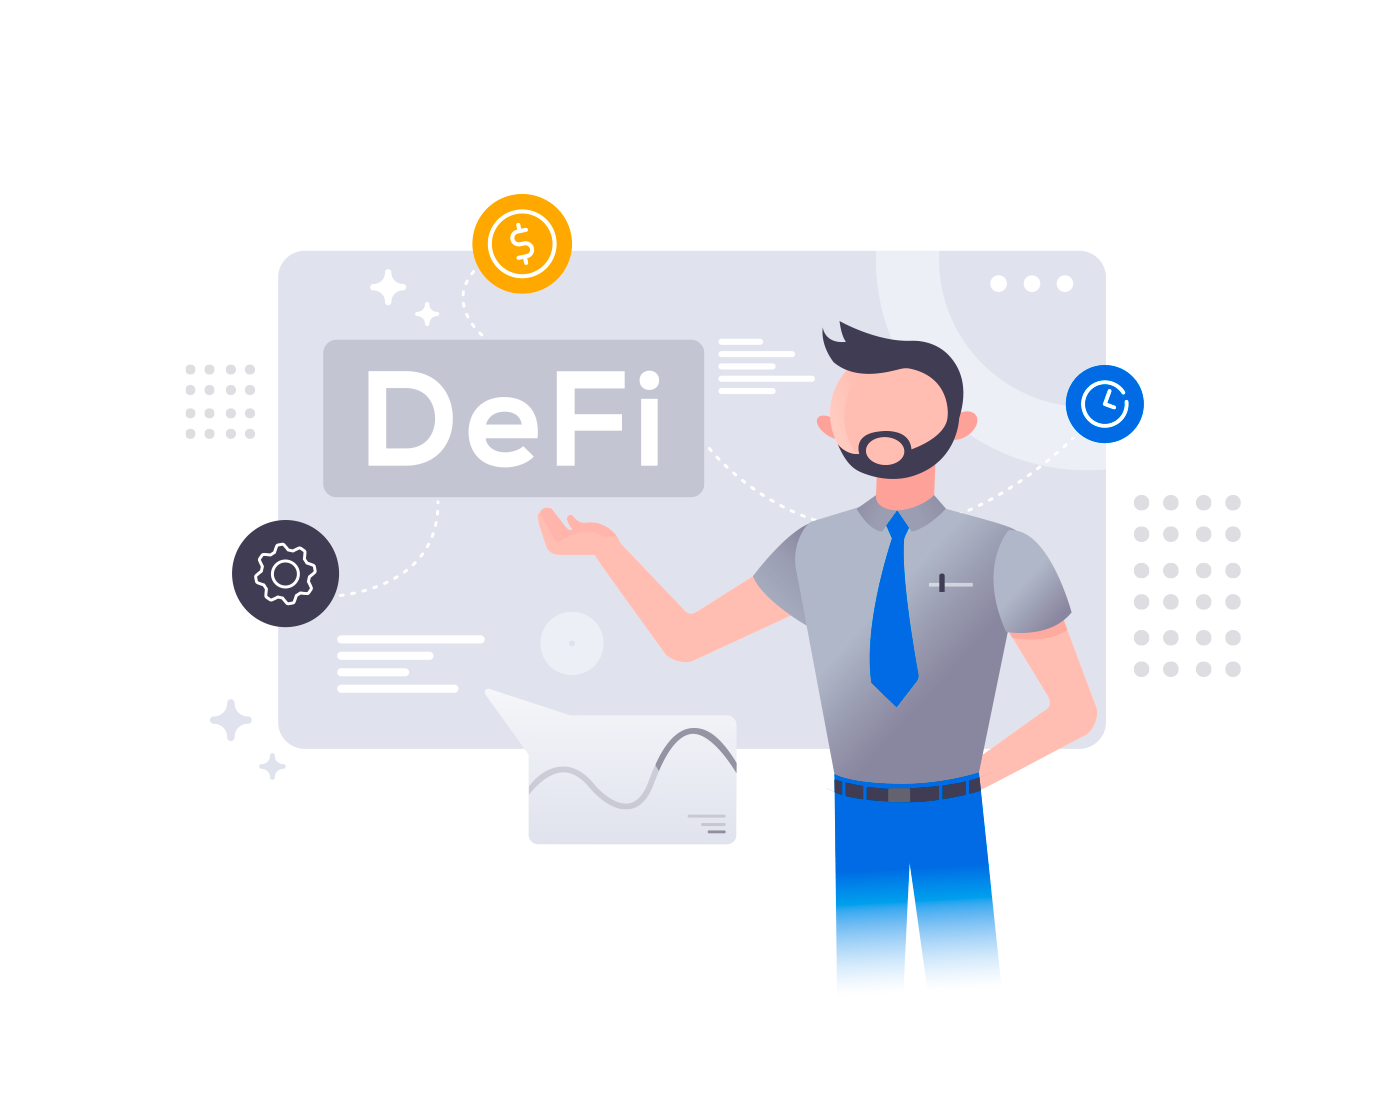 Why Would You Need DeFi?